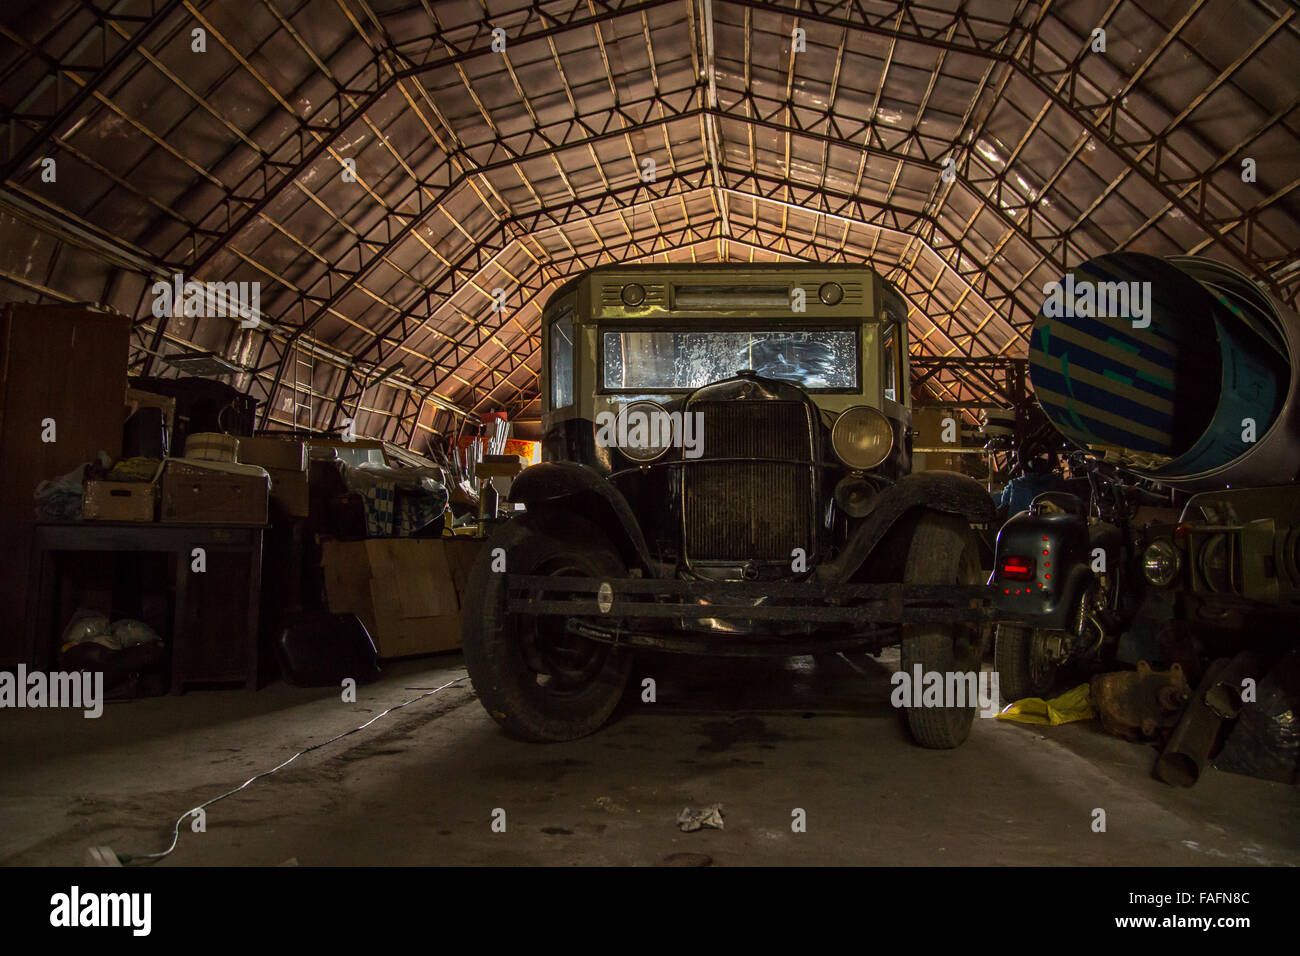 Museum of industrial culture in Moscow: you have never seen anything like it 2